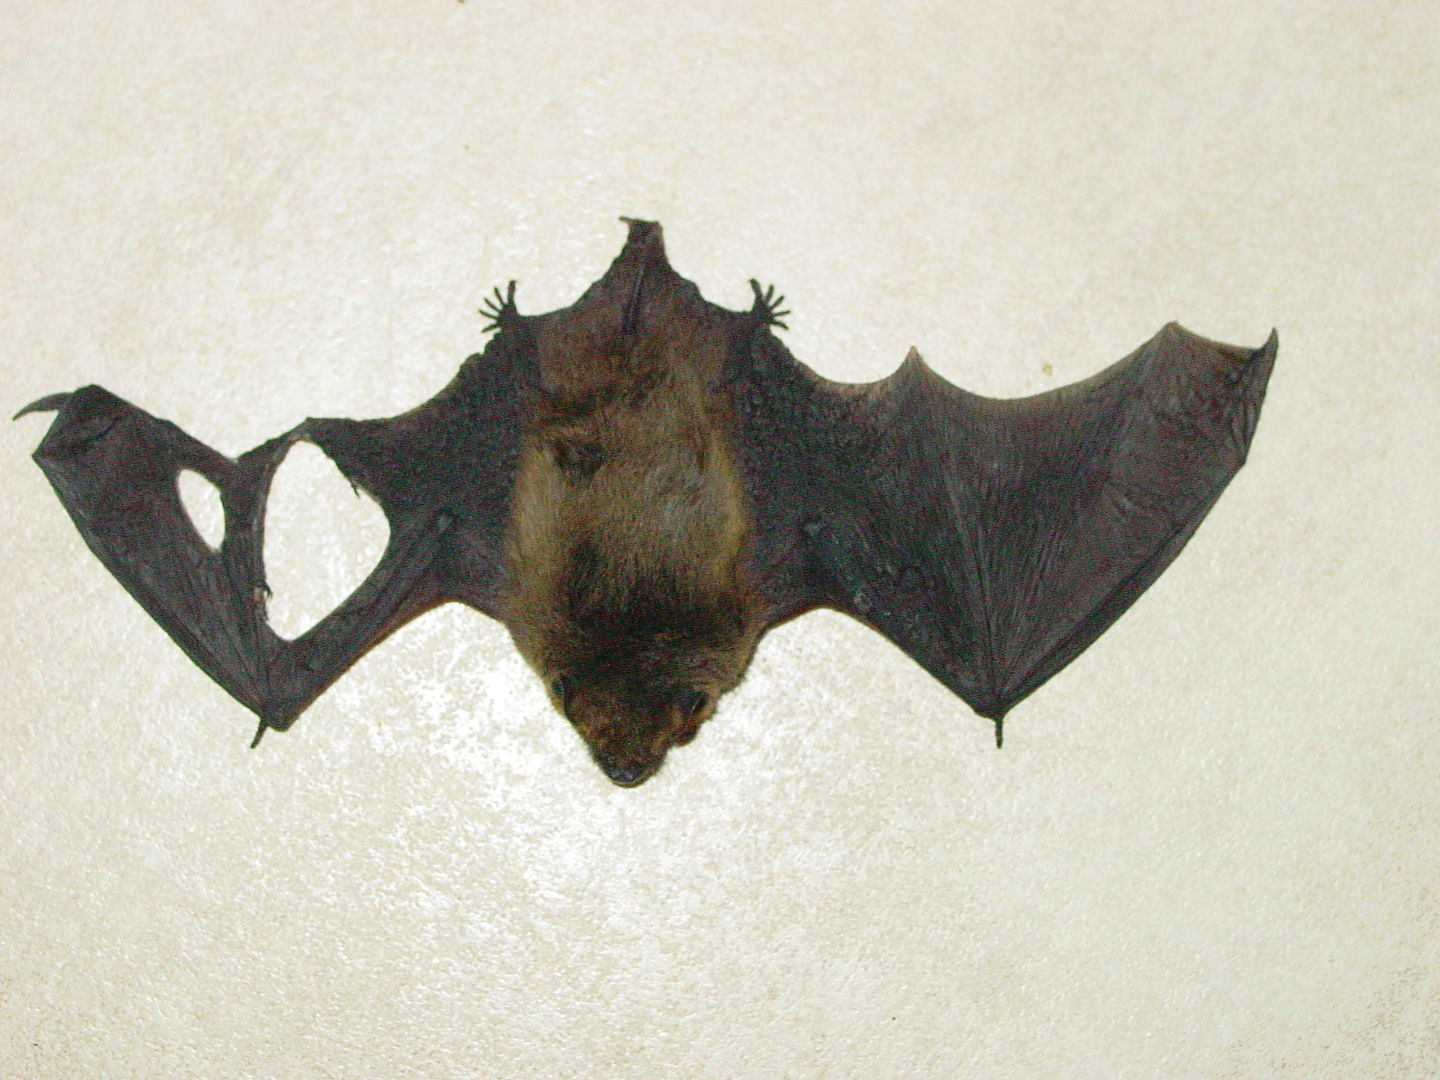 das Foto zeigt eine Fledermaus mit Flügelverletzung // the photo shows a bat with an injured wing